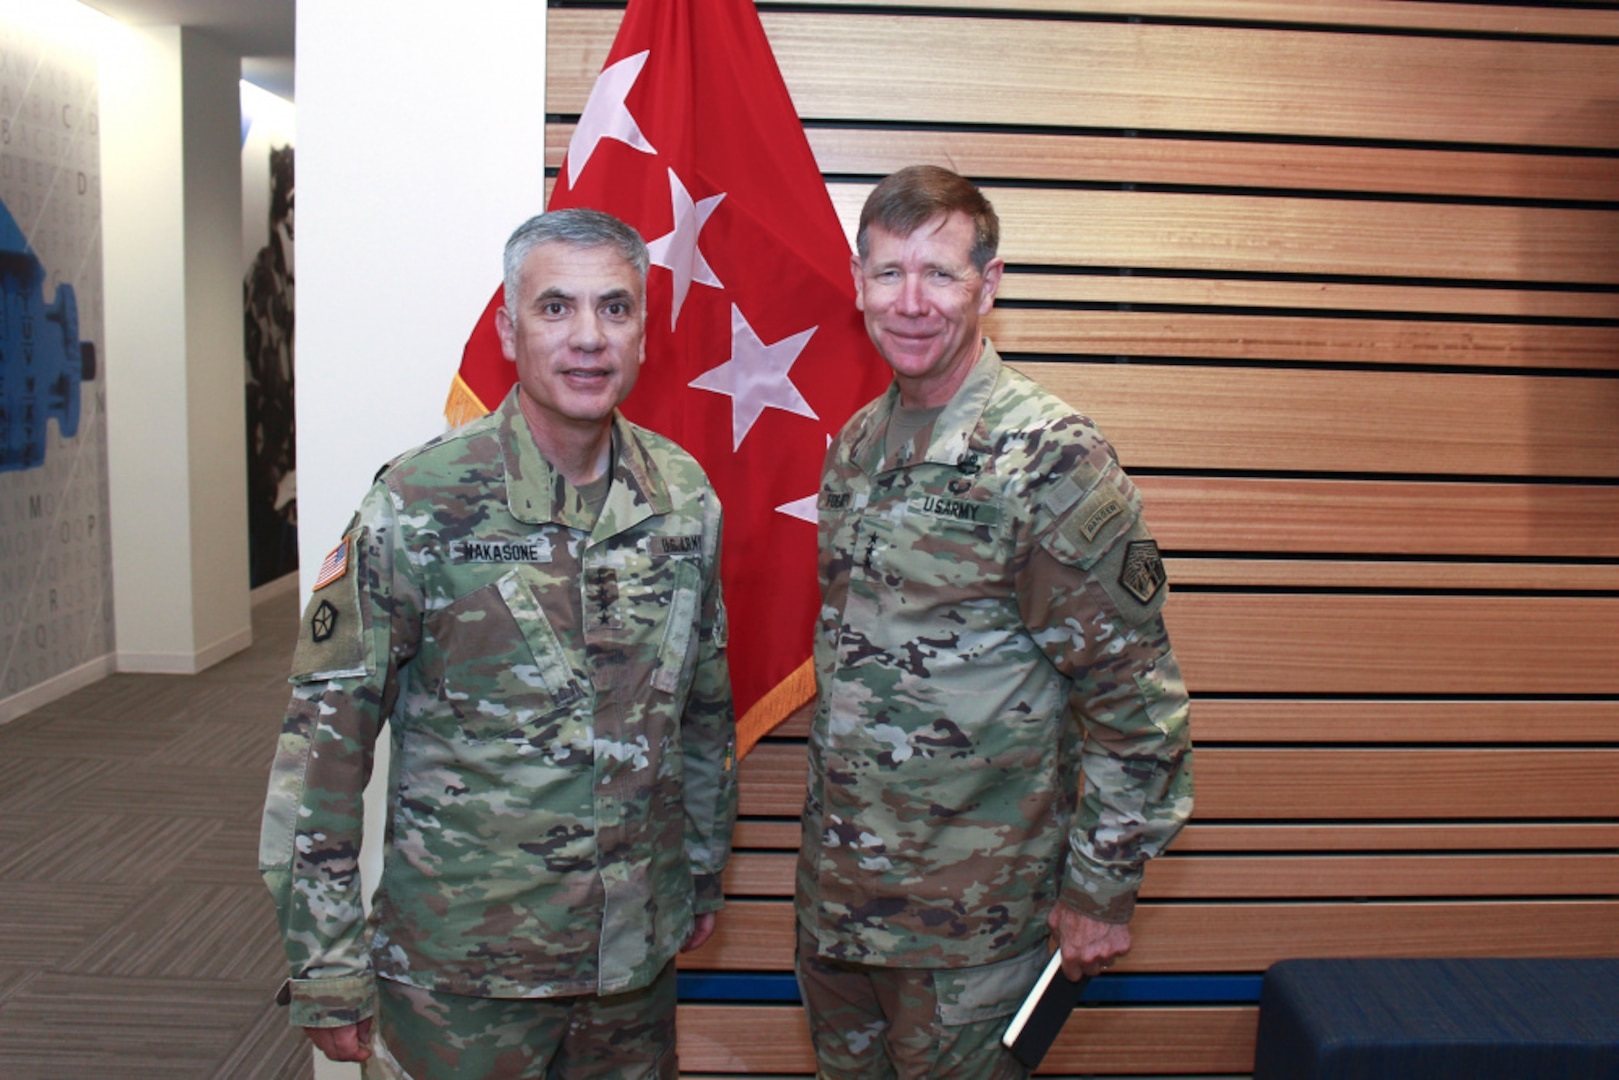 Photo By Sgt. 1st Class Teddy Wade   Gen. Paul Nakasone, commander of U.S. Cyber Command, Director of the National Security Agency and Chief of the Central Security Service (left), meets with Lt. Gen. Stephen G. Fogarty, commander of U.S. Army Cyber Command, (ARCYBER) during a visit and series of briefings with ARCYBER leaders at the command's headquarters at Fort Gordon, Ga., July 14, 2021. (Photo by Master Sgt. Teddy Wade)